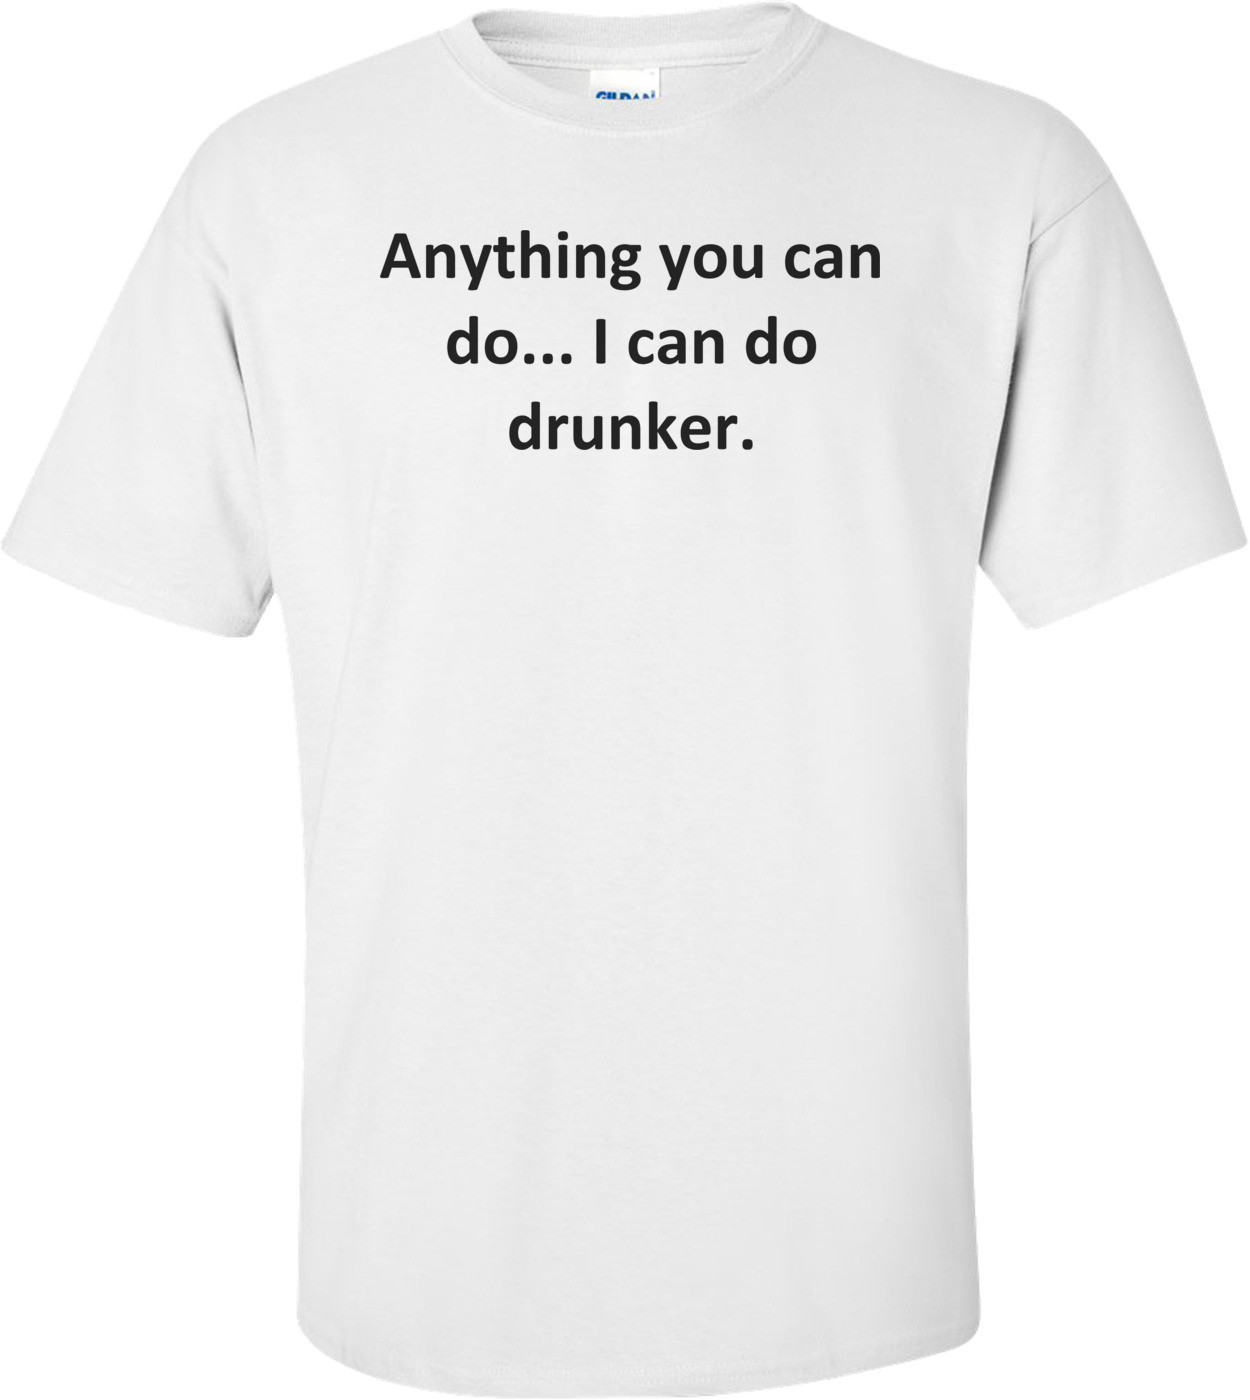 Anything you can do... I can do drunker. Shirt